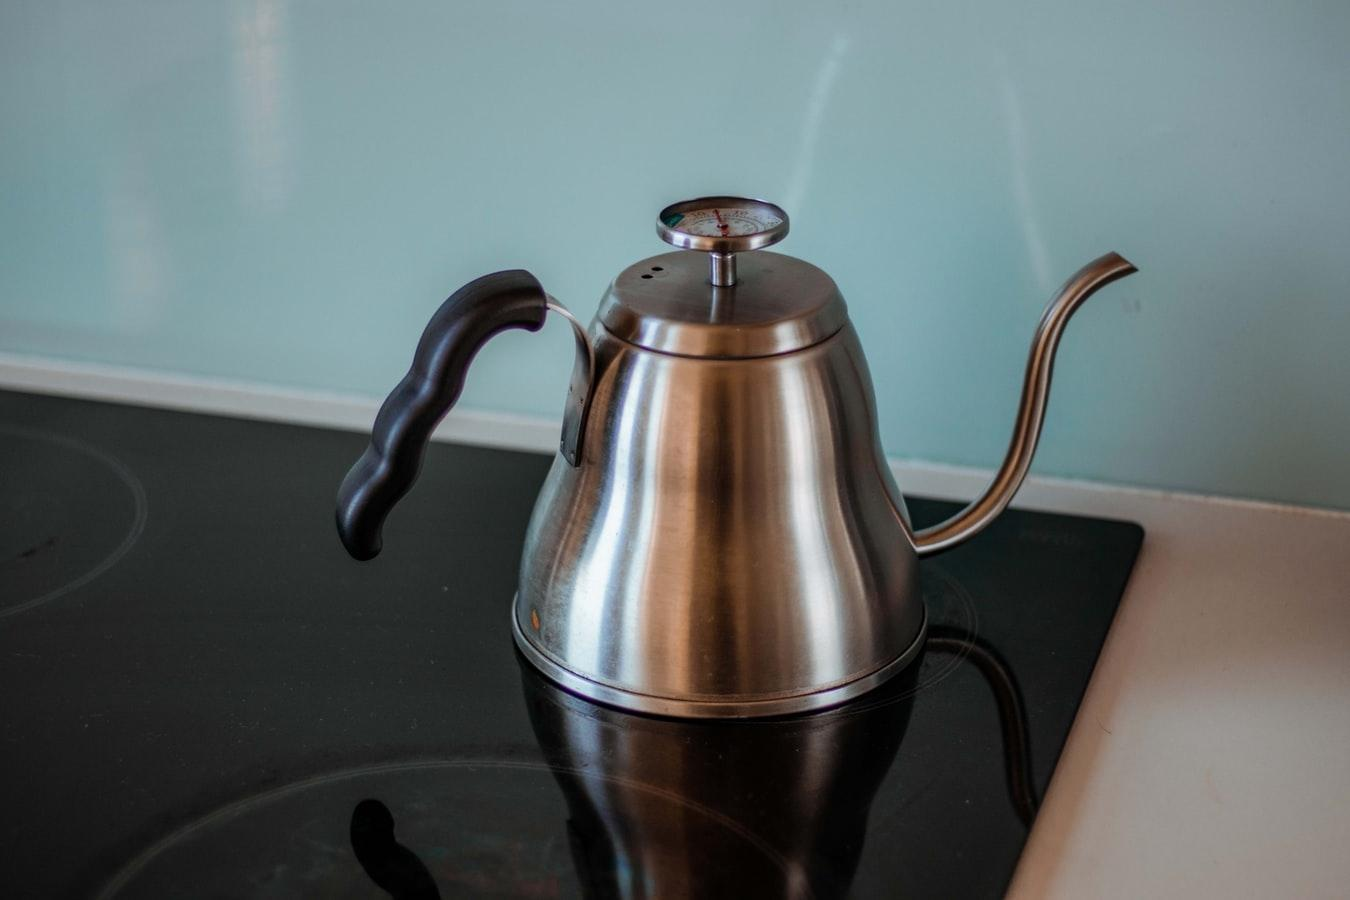 The best boiling water unit is right in front of you